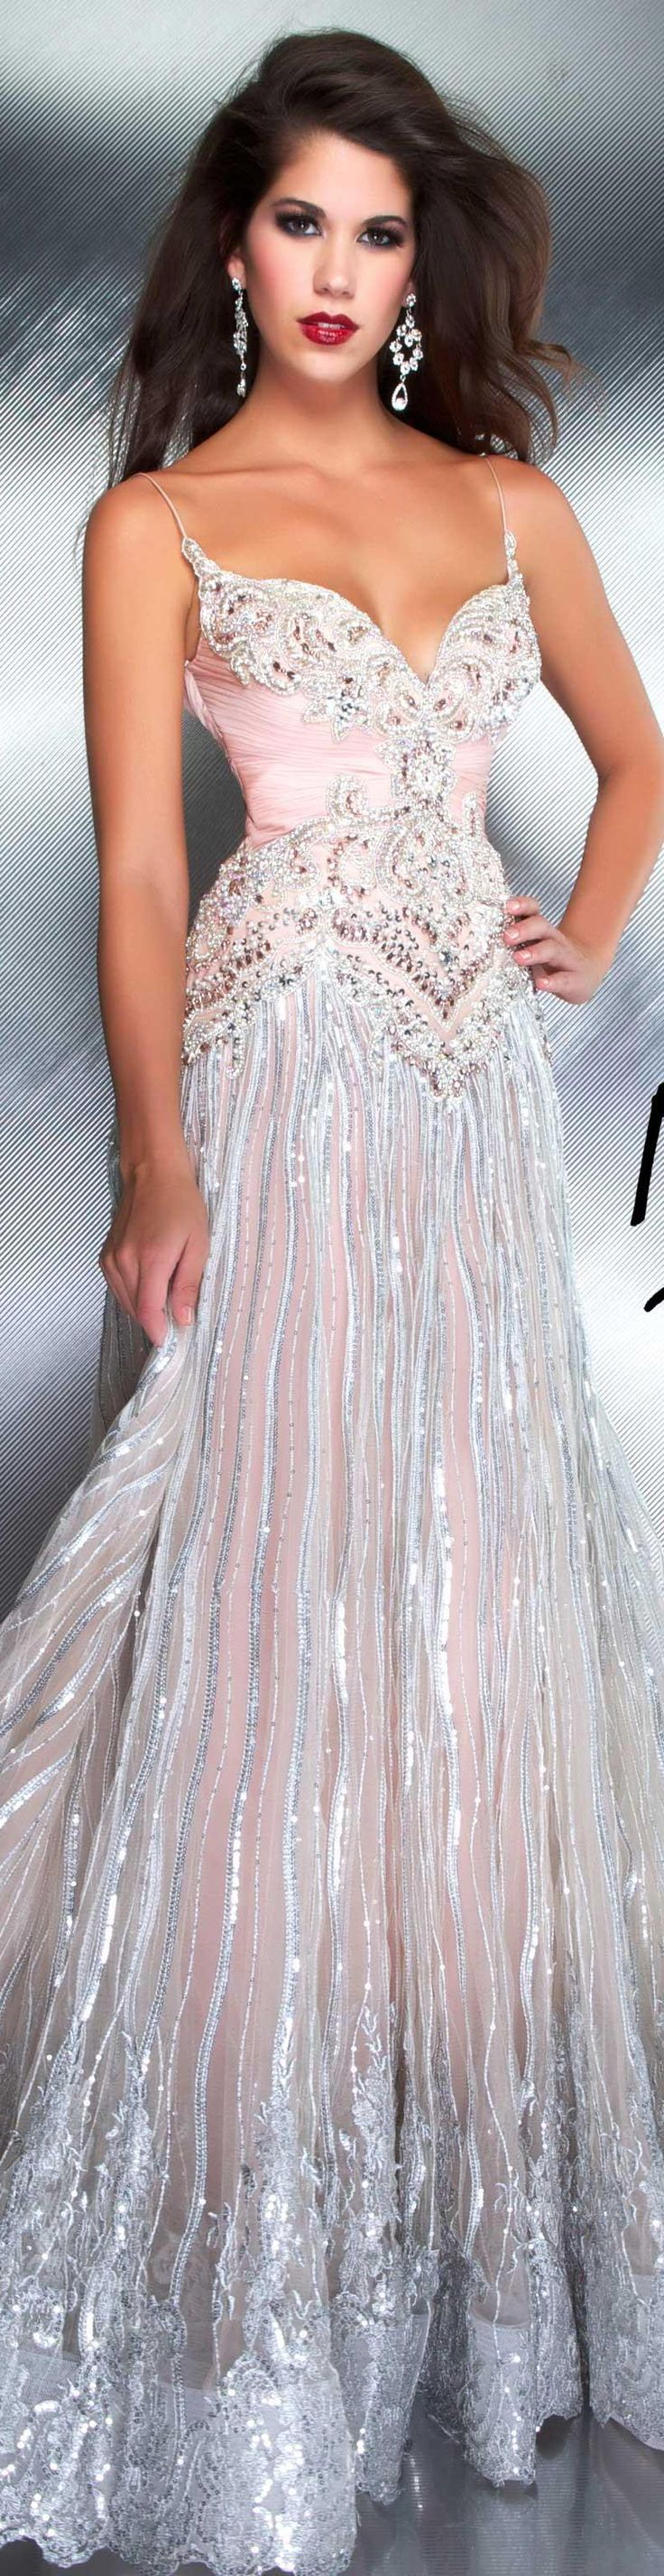 www.macduggal.com, Mac Duggal Couture, Bridal Collection, bride, bridal, wedding, noiva, عروس, زفاف, novia, sposa, כלה, abiti da sposa, vestidos de novia, vestidos de noiva, boda, casemento, mariage, matrimonio, wedding dress, wedding gown